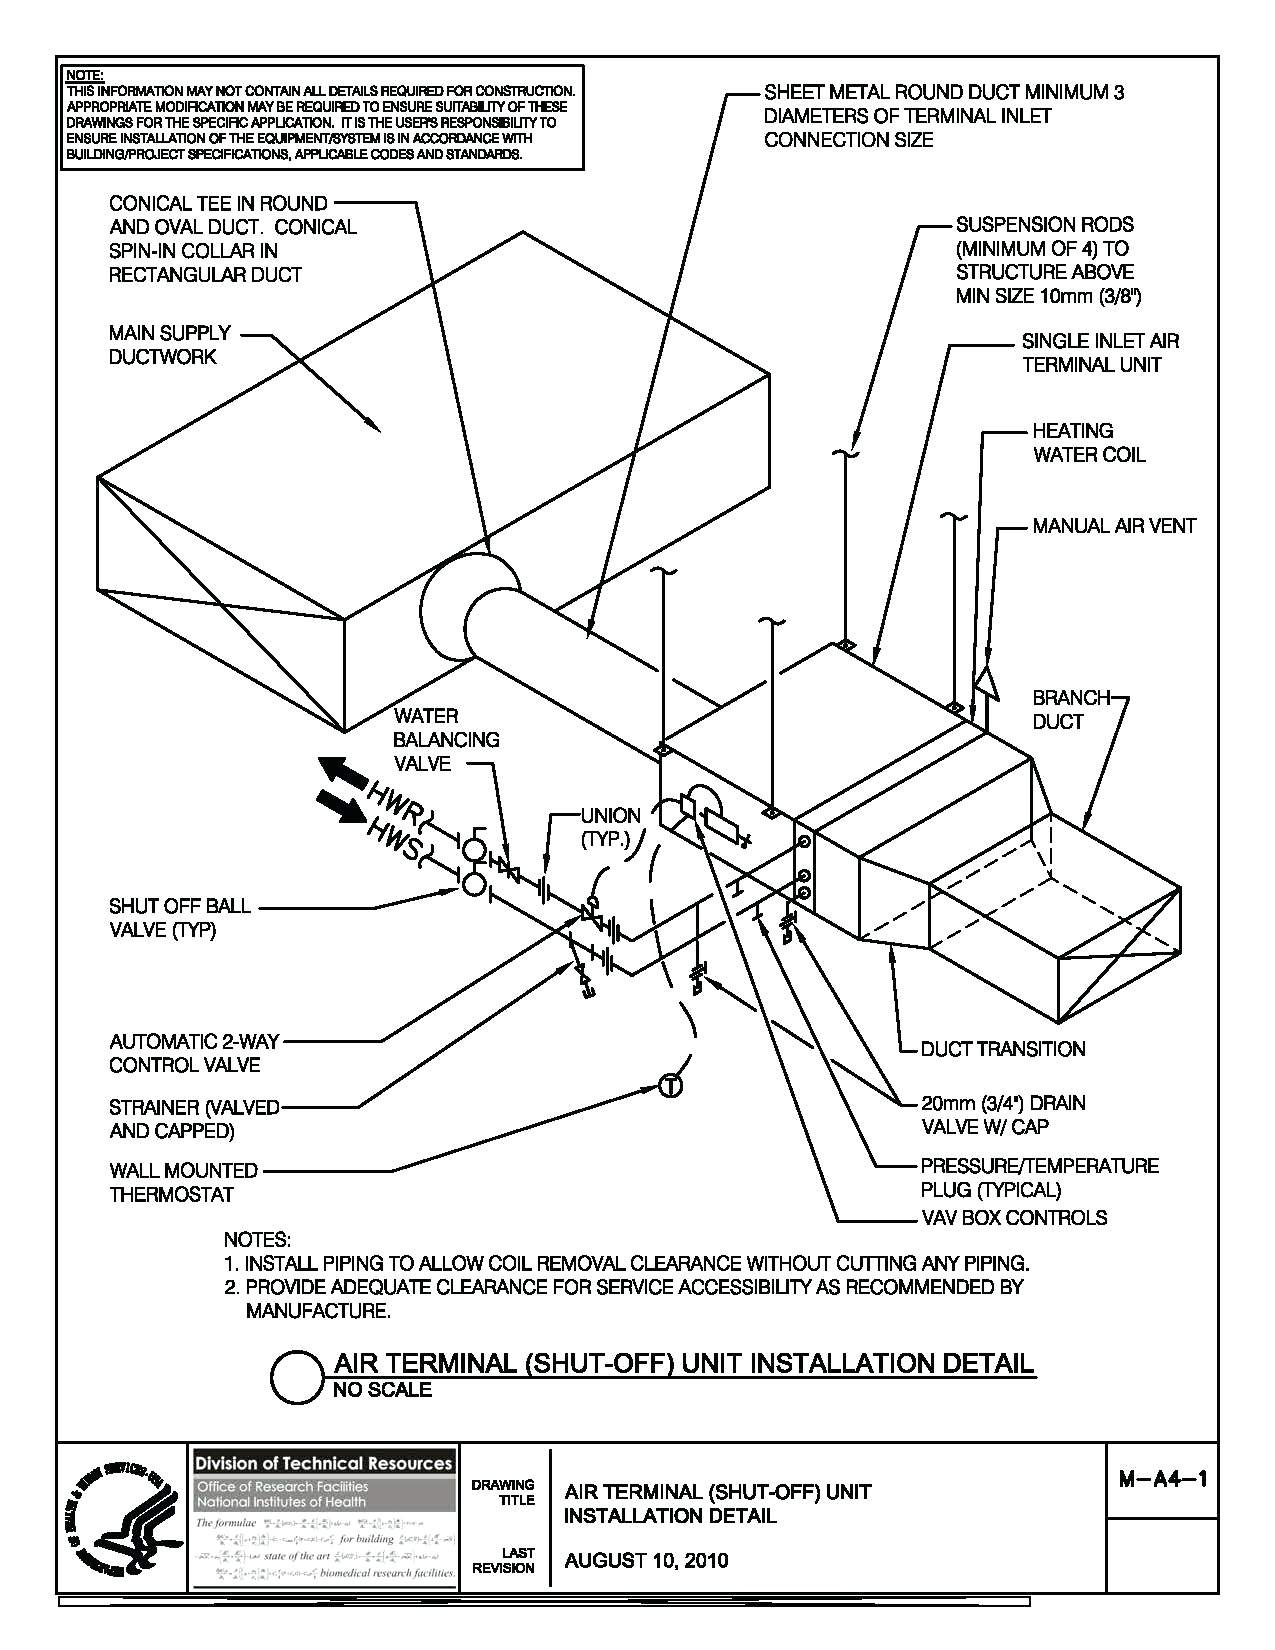 Furnace Drawing At Free For Personal Use Sears Wall Wiring Diagram 1275x1650 Ductwork